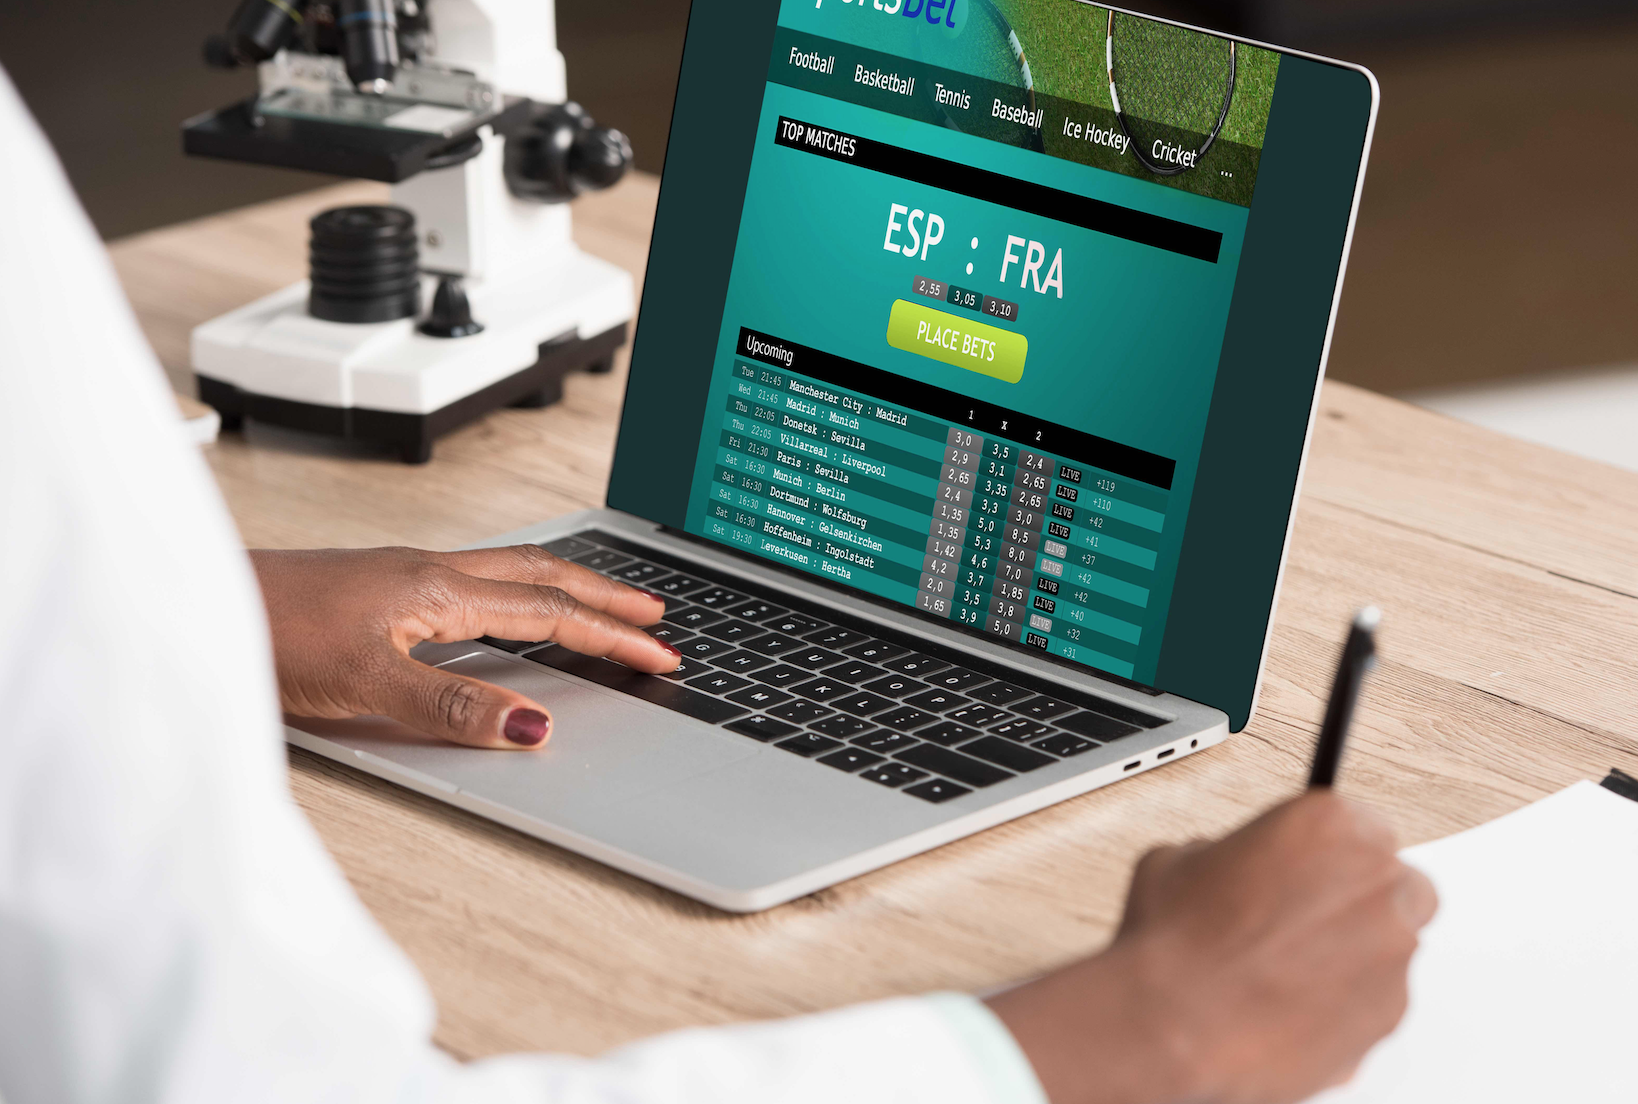 Big time betting comes to Africa as digital platforms  take gambling to a new level